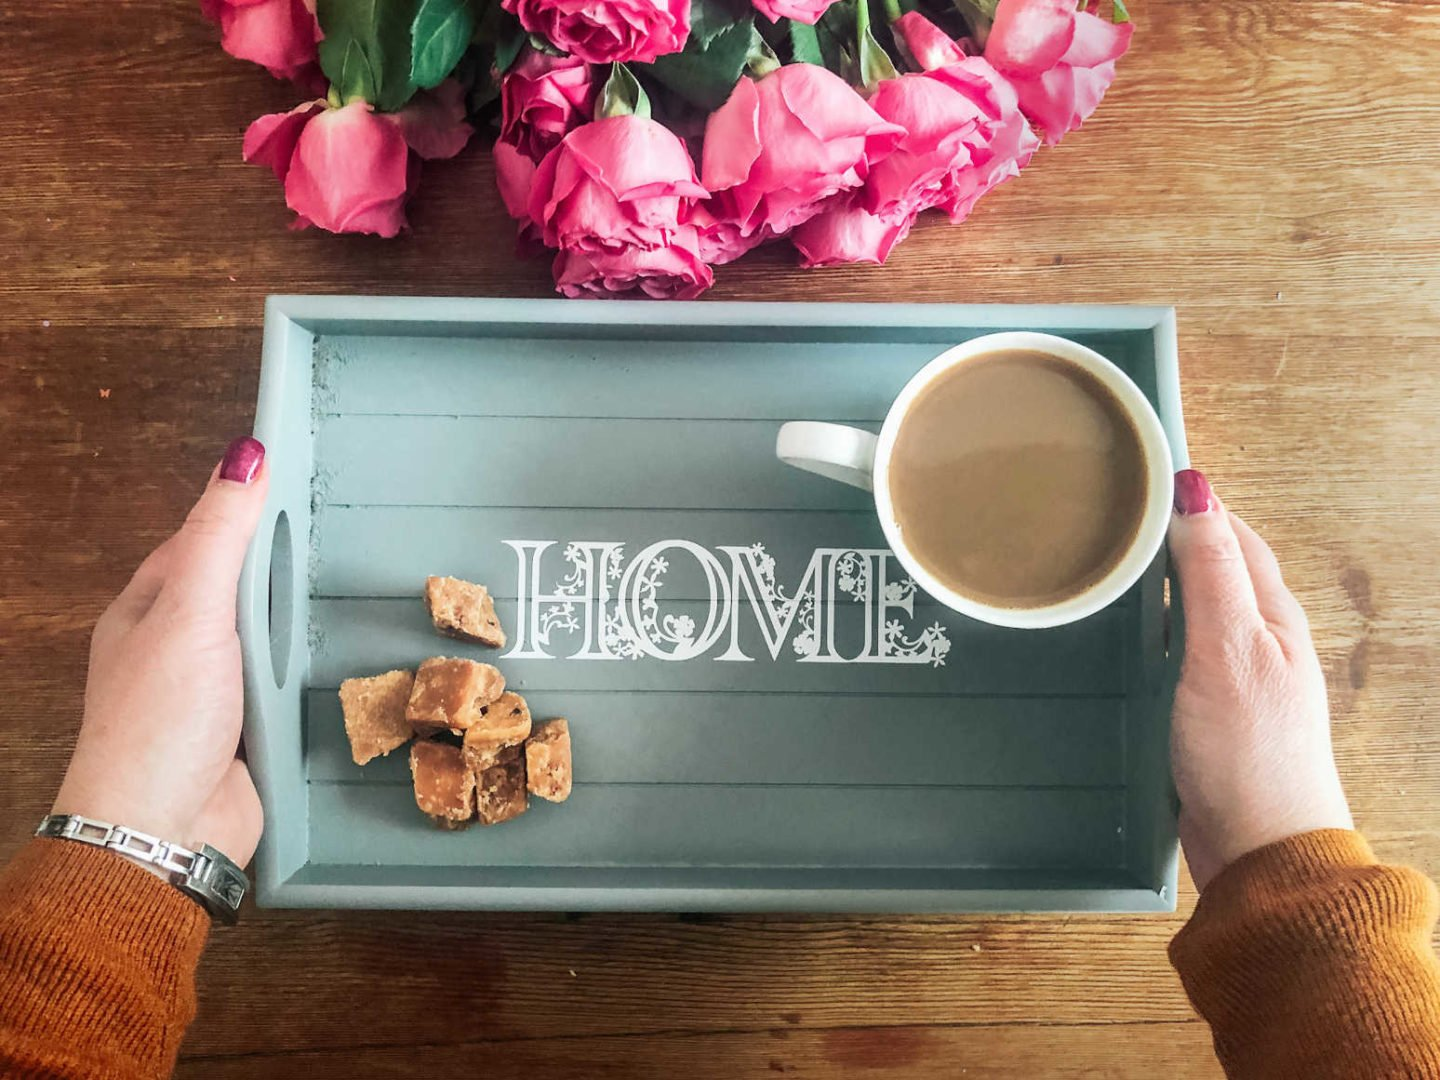 Making a tray with permanent vinyl cricut floral alphabet template decals